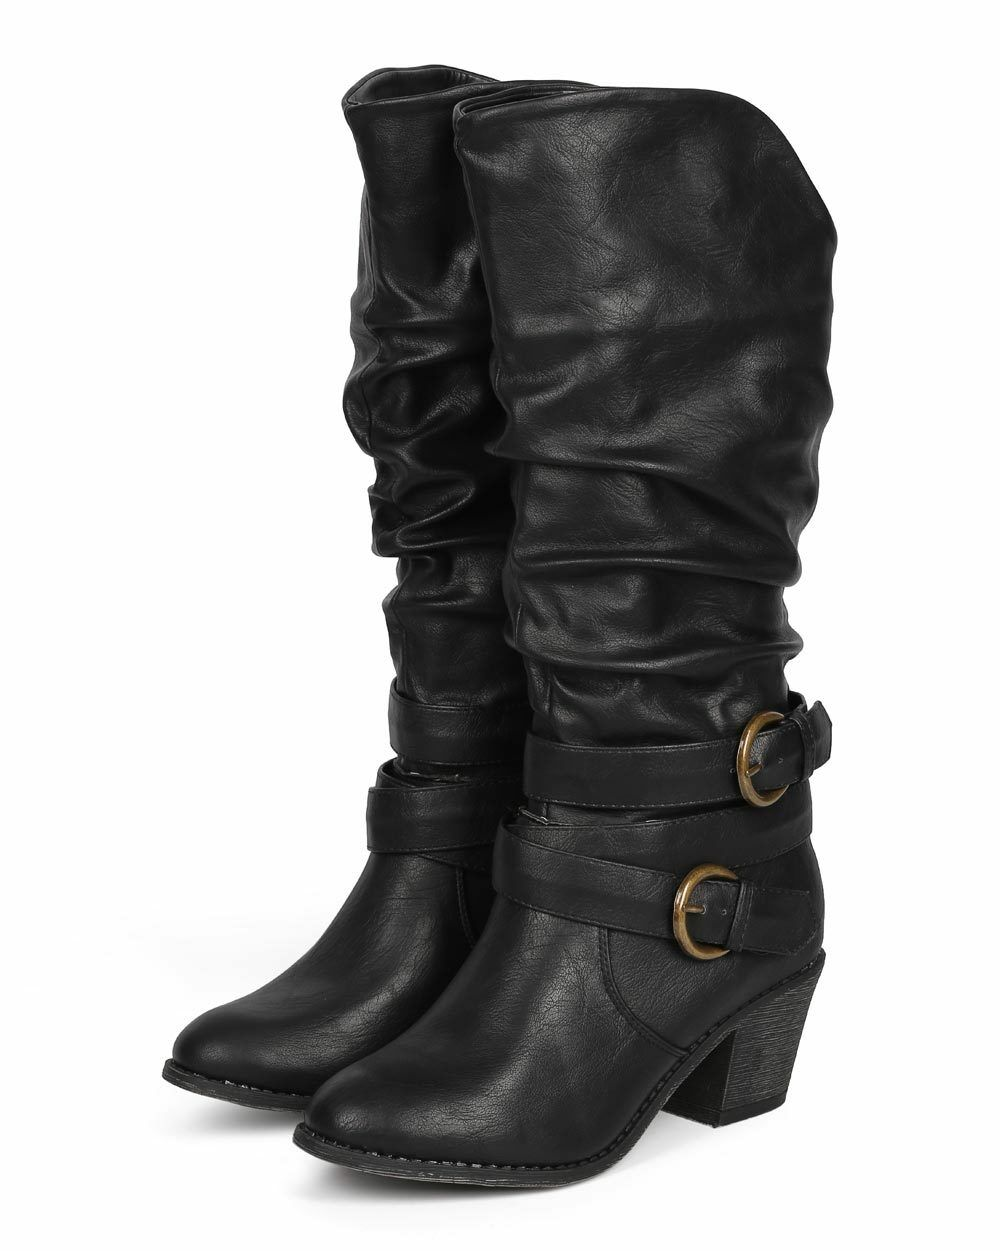 New Women Liliana Daryn-1 Distressed Knee High Slouchy Strappy Riding Boot Size